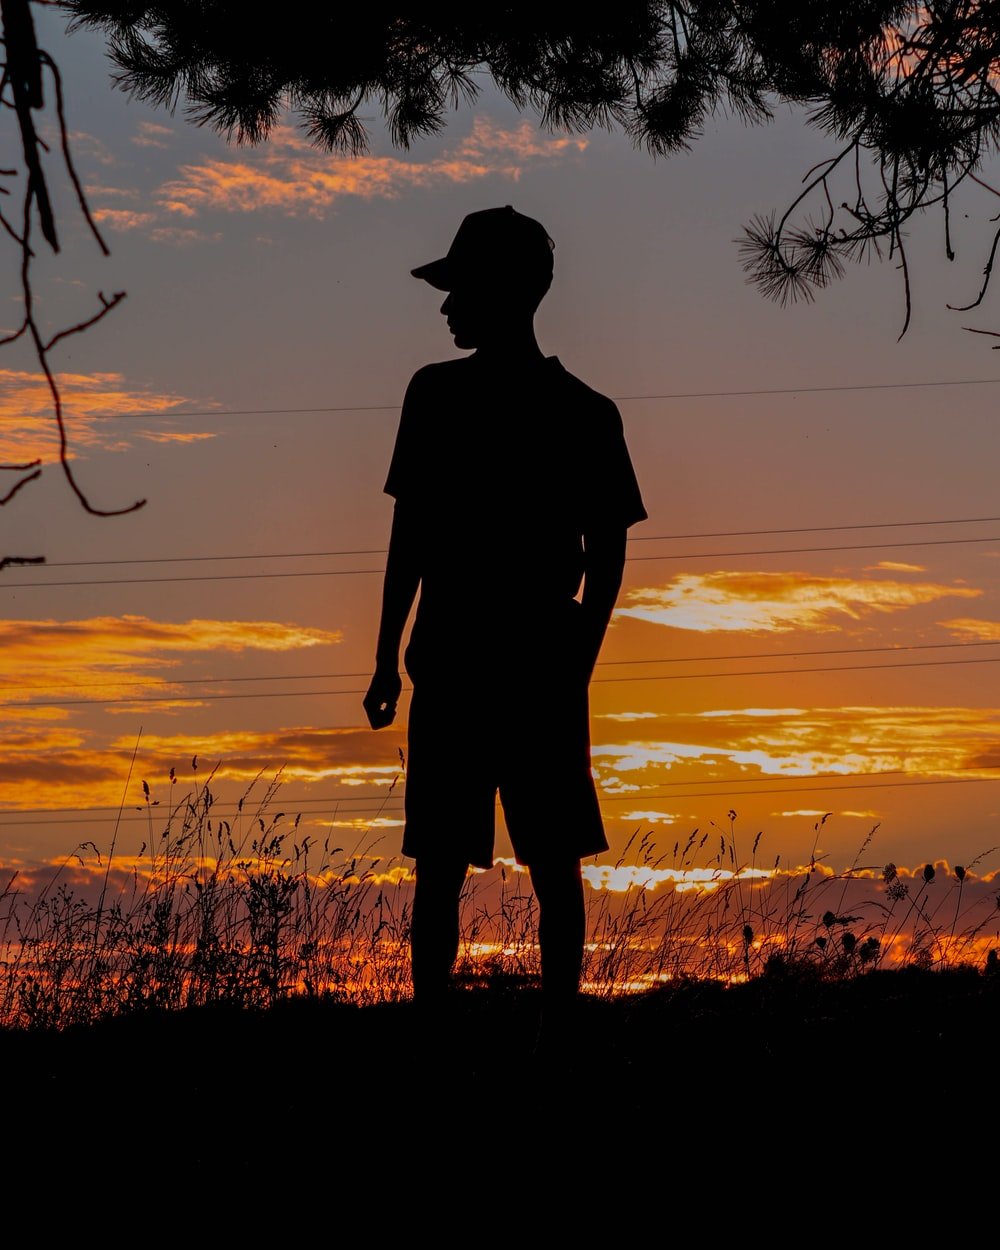 silhouette of person wearing hat standing on grass field during sunset